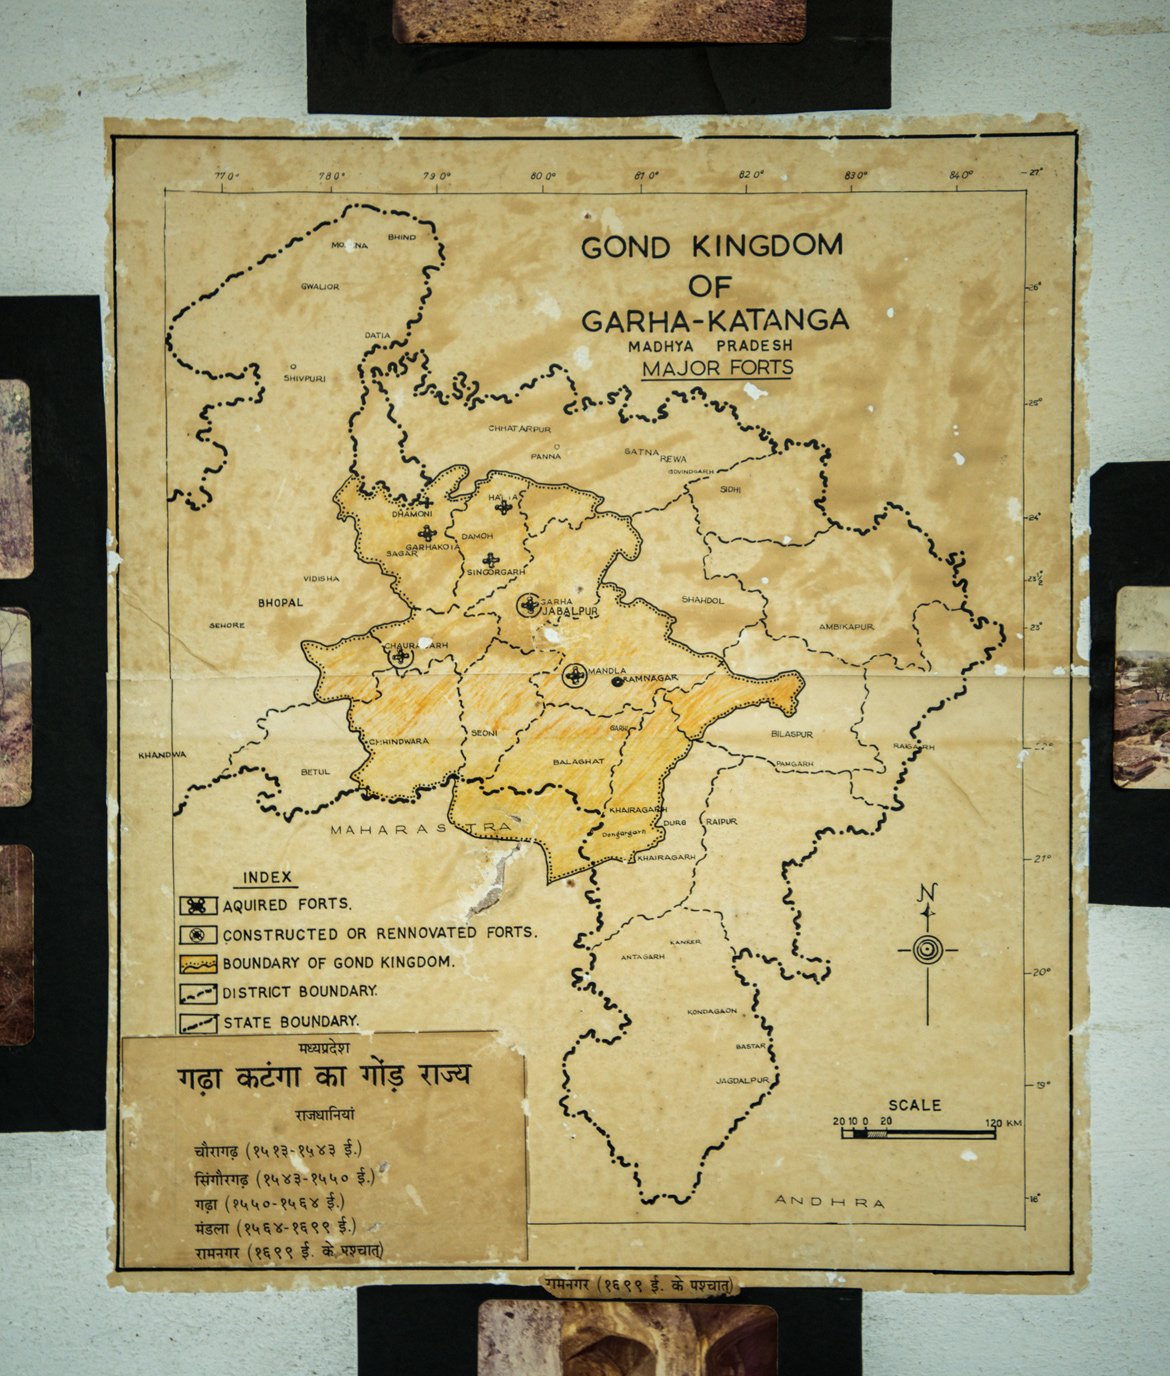 A display at Rani Durgavati Museum shows details of an earlier Gond kingdom in the area of Garha-Katanga (also known as Gondwana).